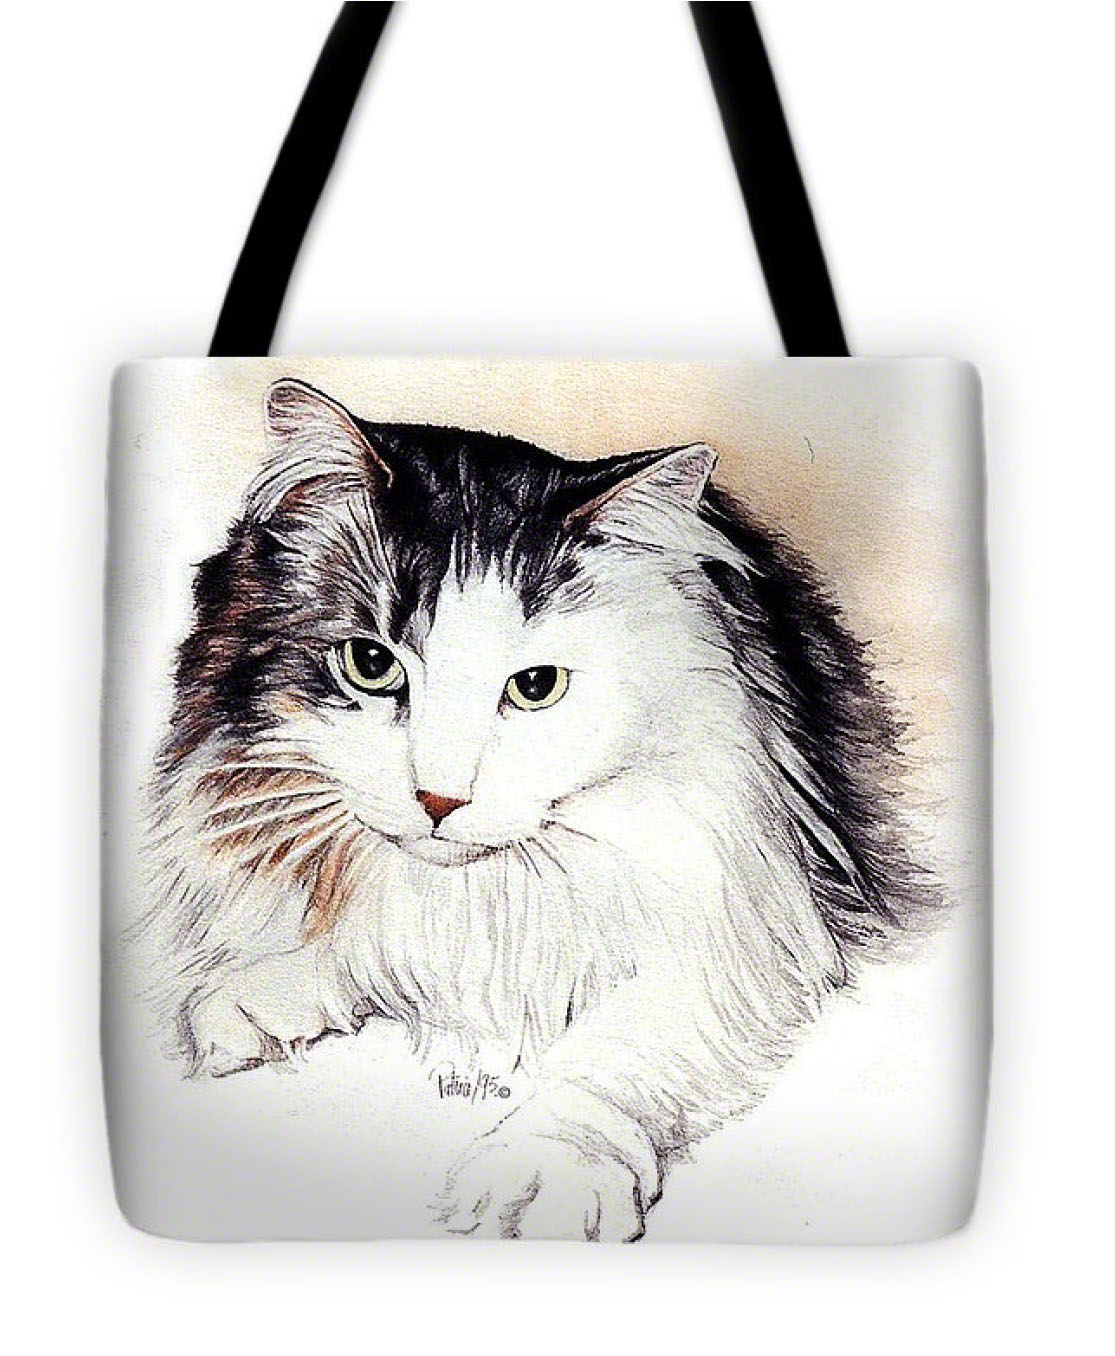 Long Haired Kitty Tote-Bag - Product by Patrice